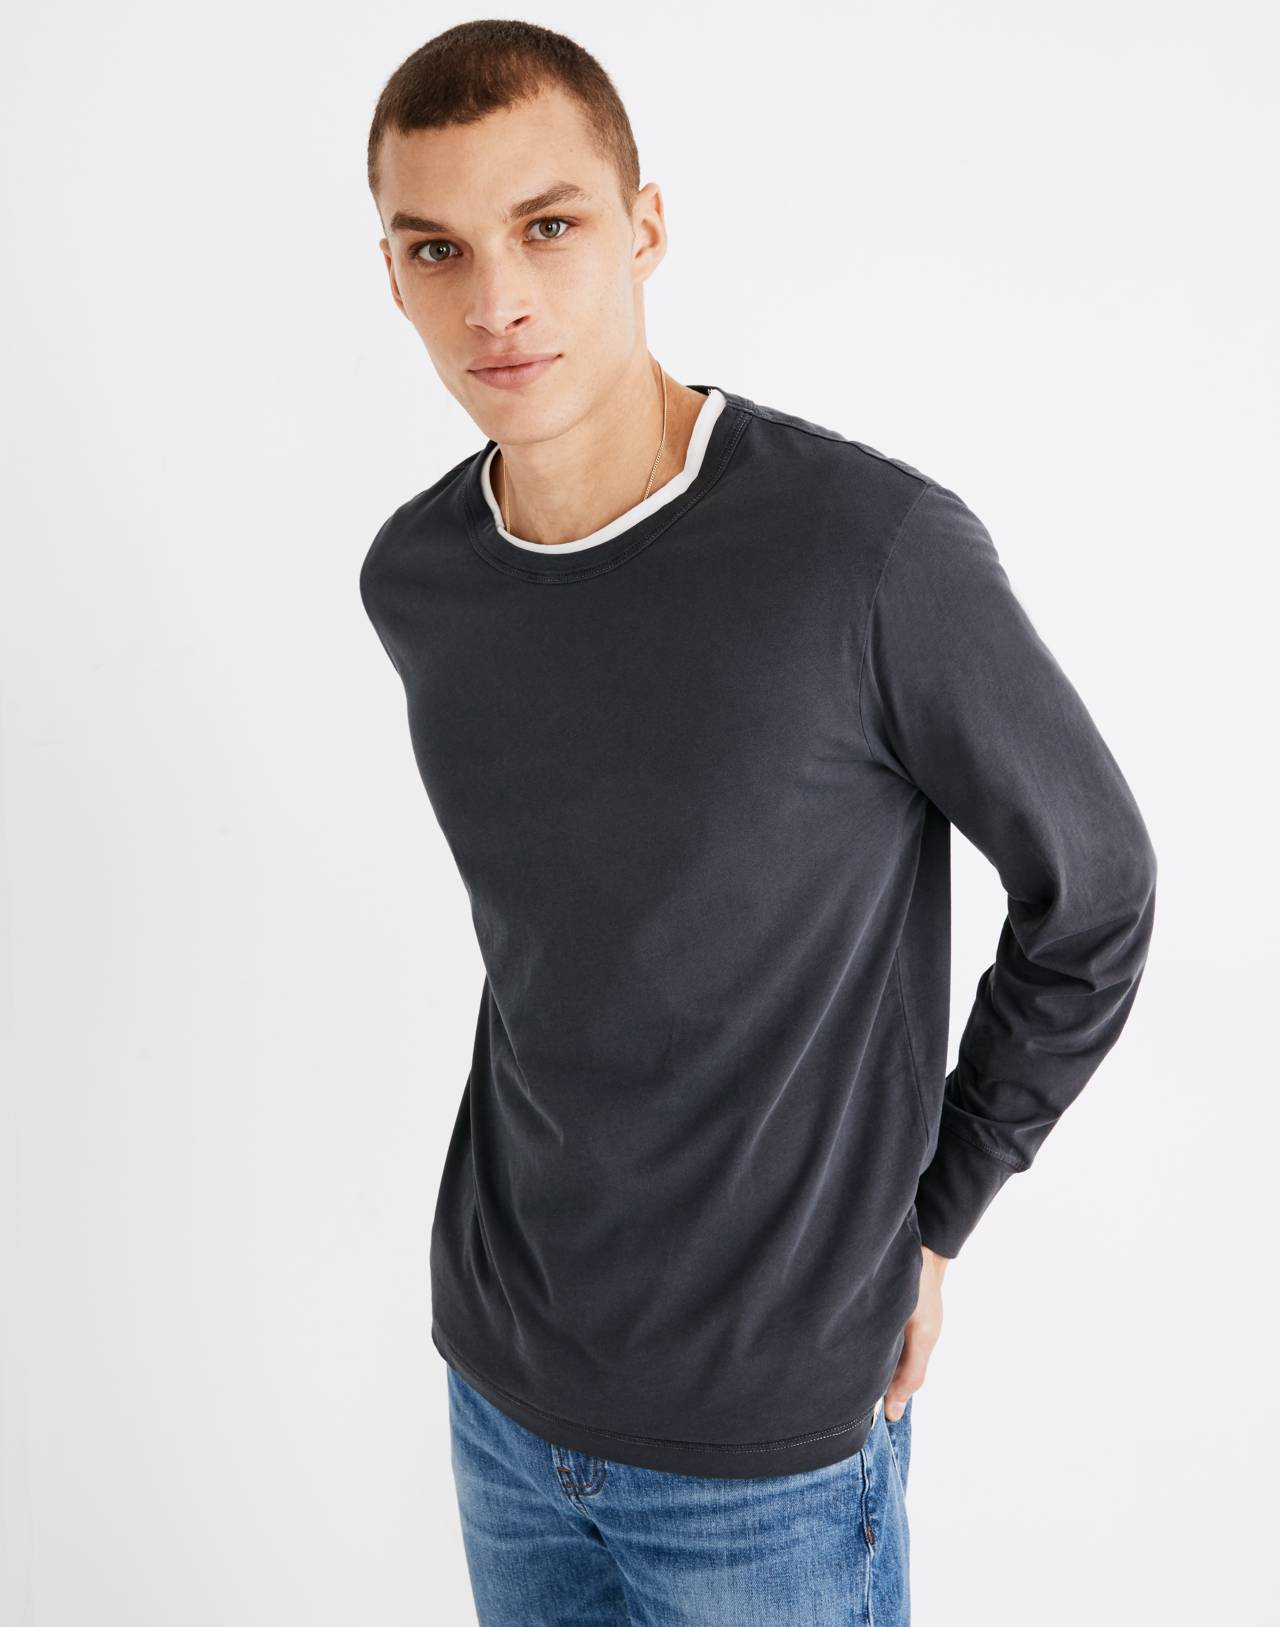 Garment-Dyed Daily Crewneck Long-Sleeve Tee in classic black image 1